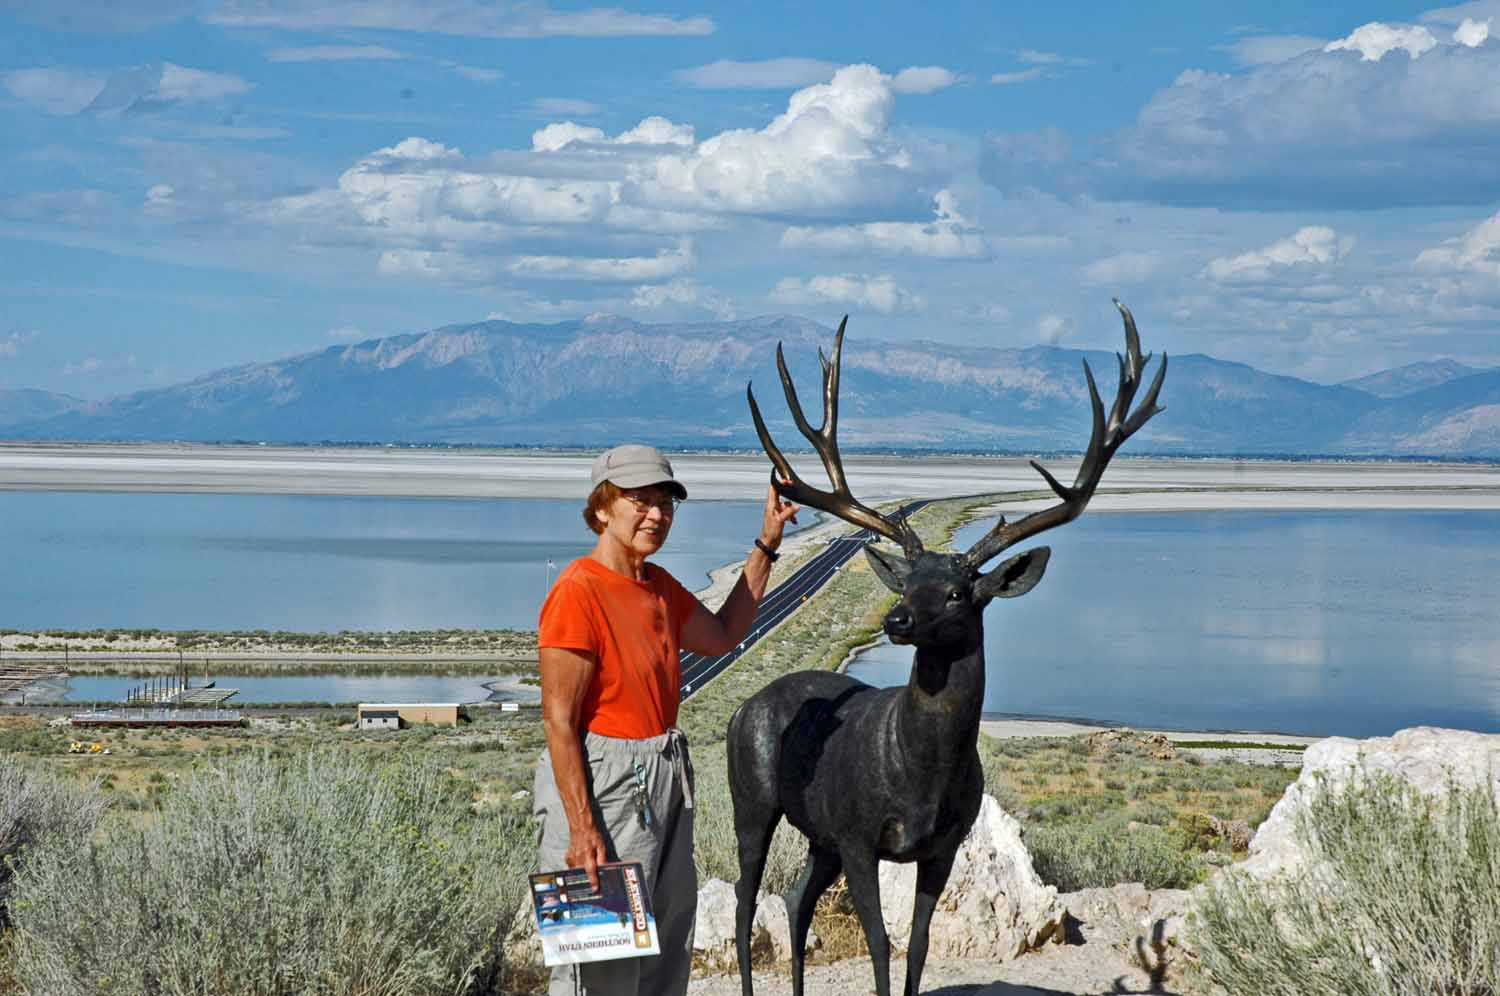 Lots to see and do on the island - there arealso buffalo, antelope and other wild life